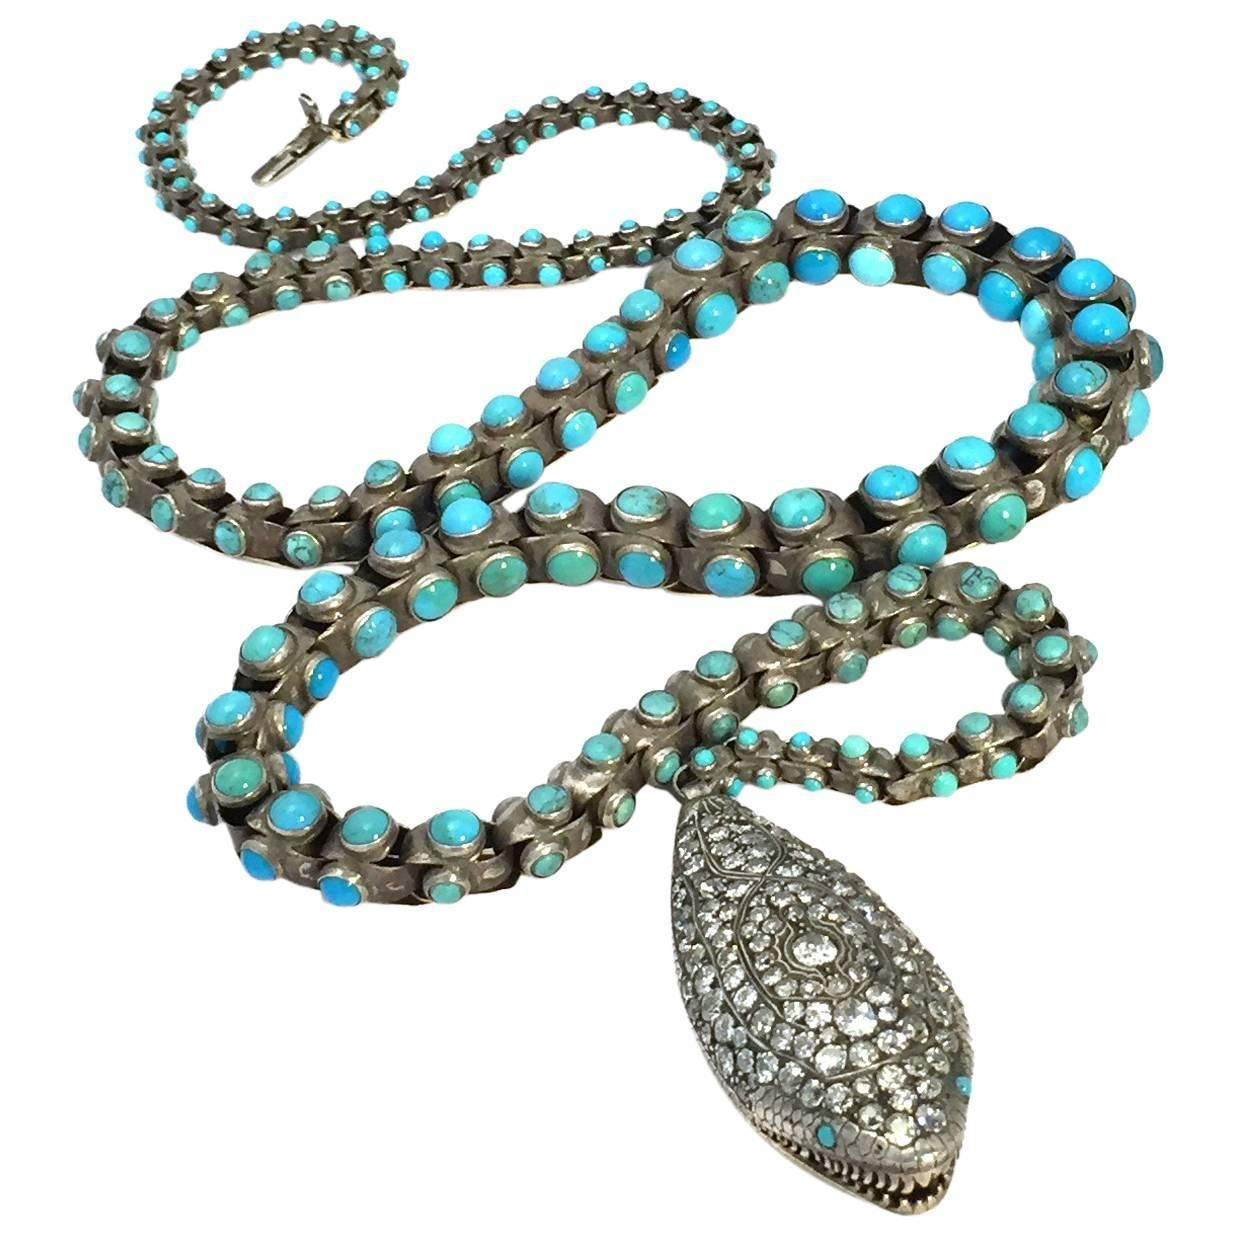 Victorian Turquoise & DIamond Snake Belt/Necklace  | From a unique collection of vintage rope necklaces at https://www.1stdibs.com/jewelry/necklaces/rope-necklaces/